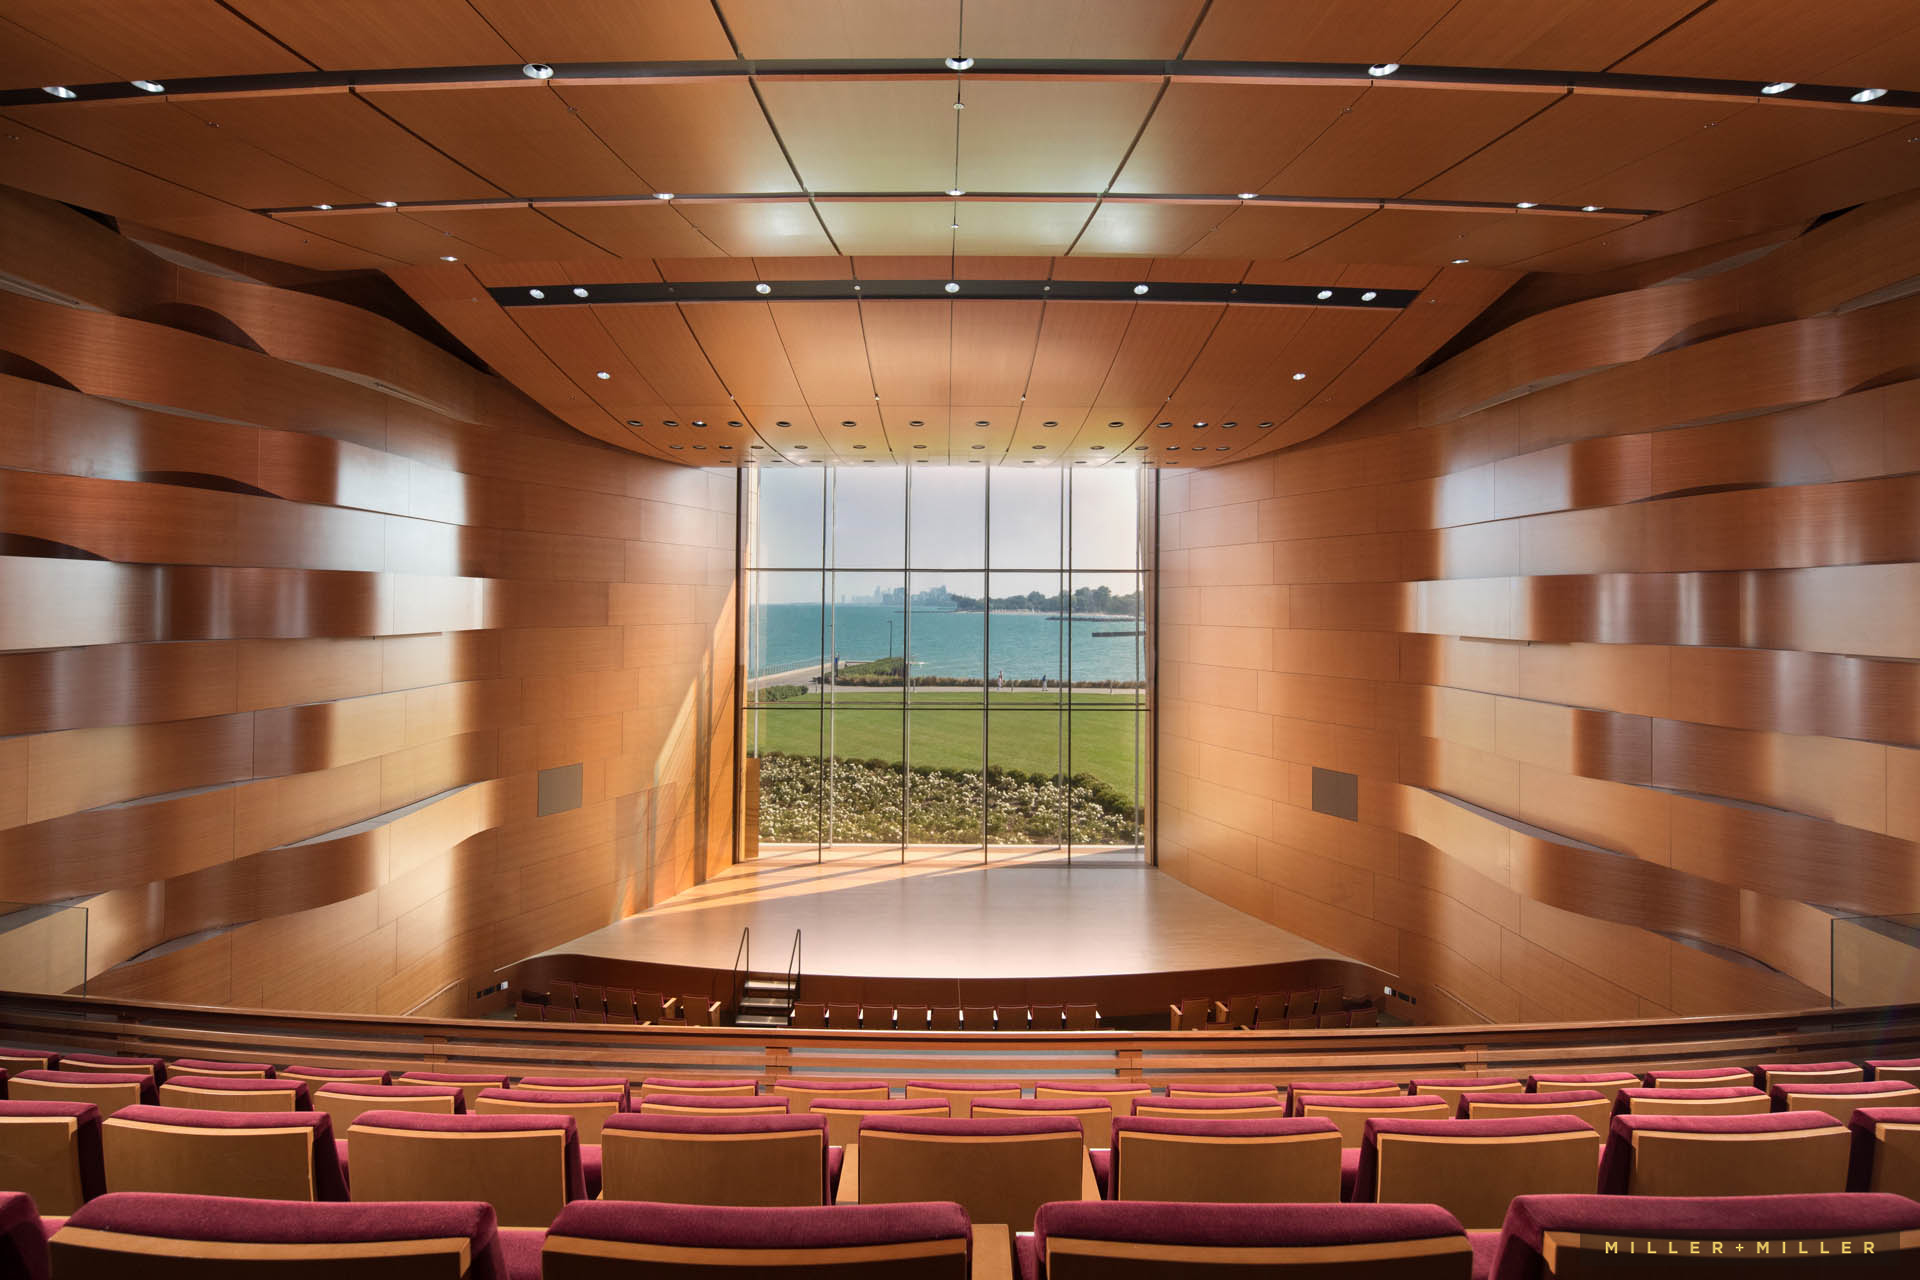 lecture-hall-theater-auditorium-room-photography